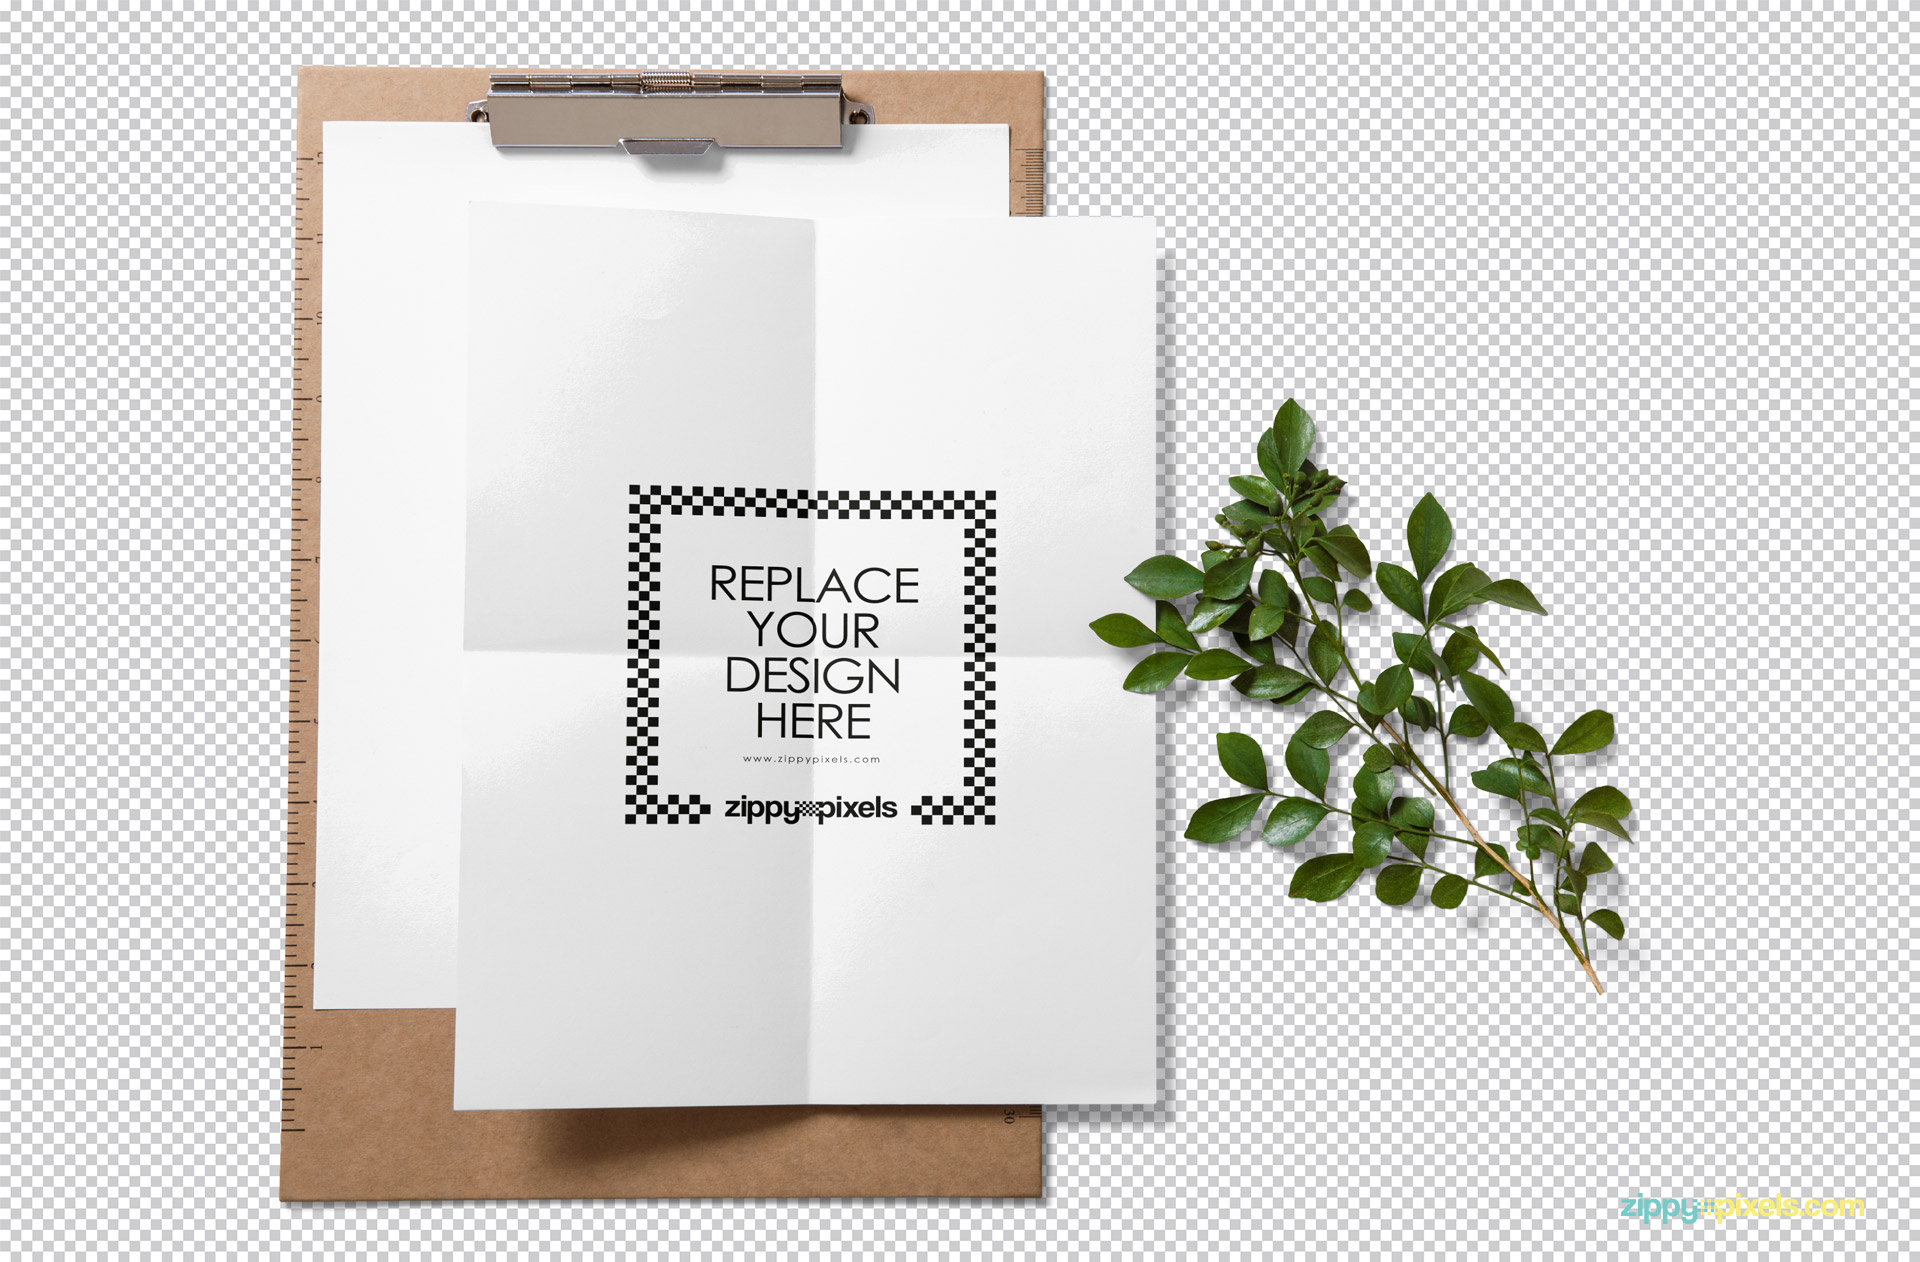 Use Photoshop to replace your designs in this paper mockup.